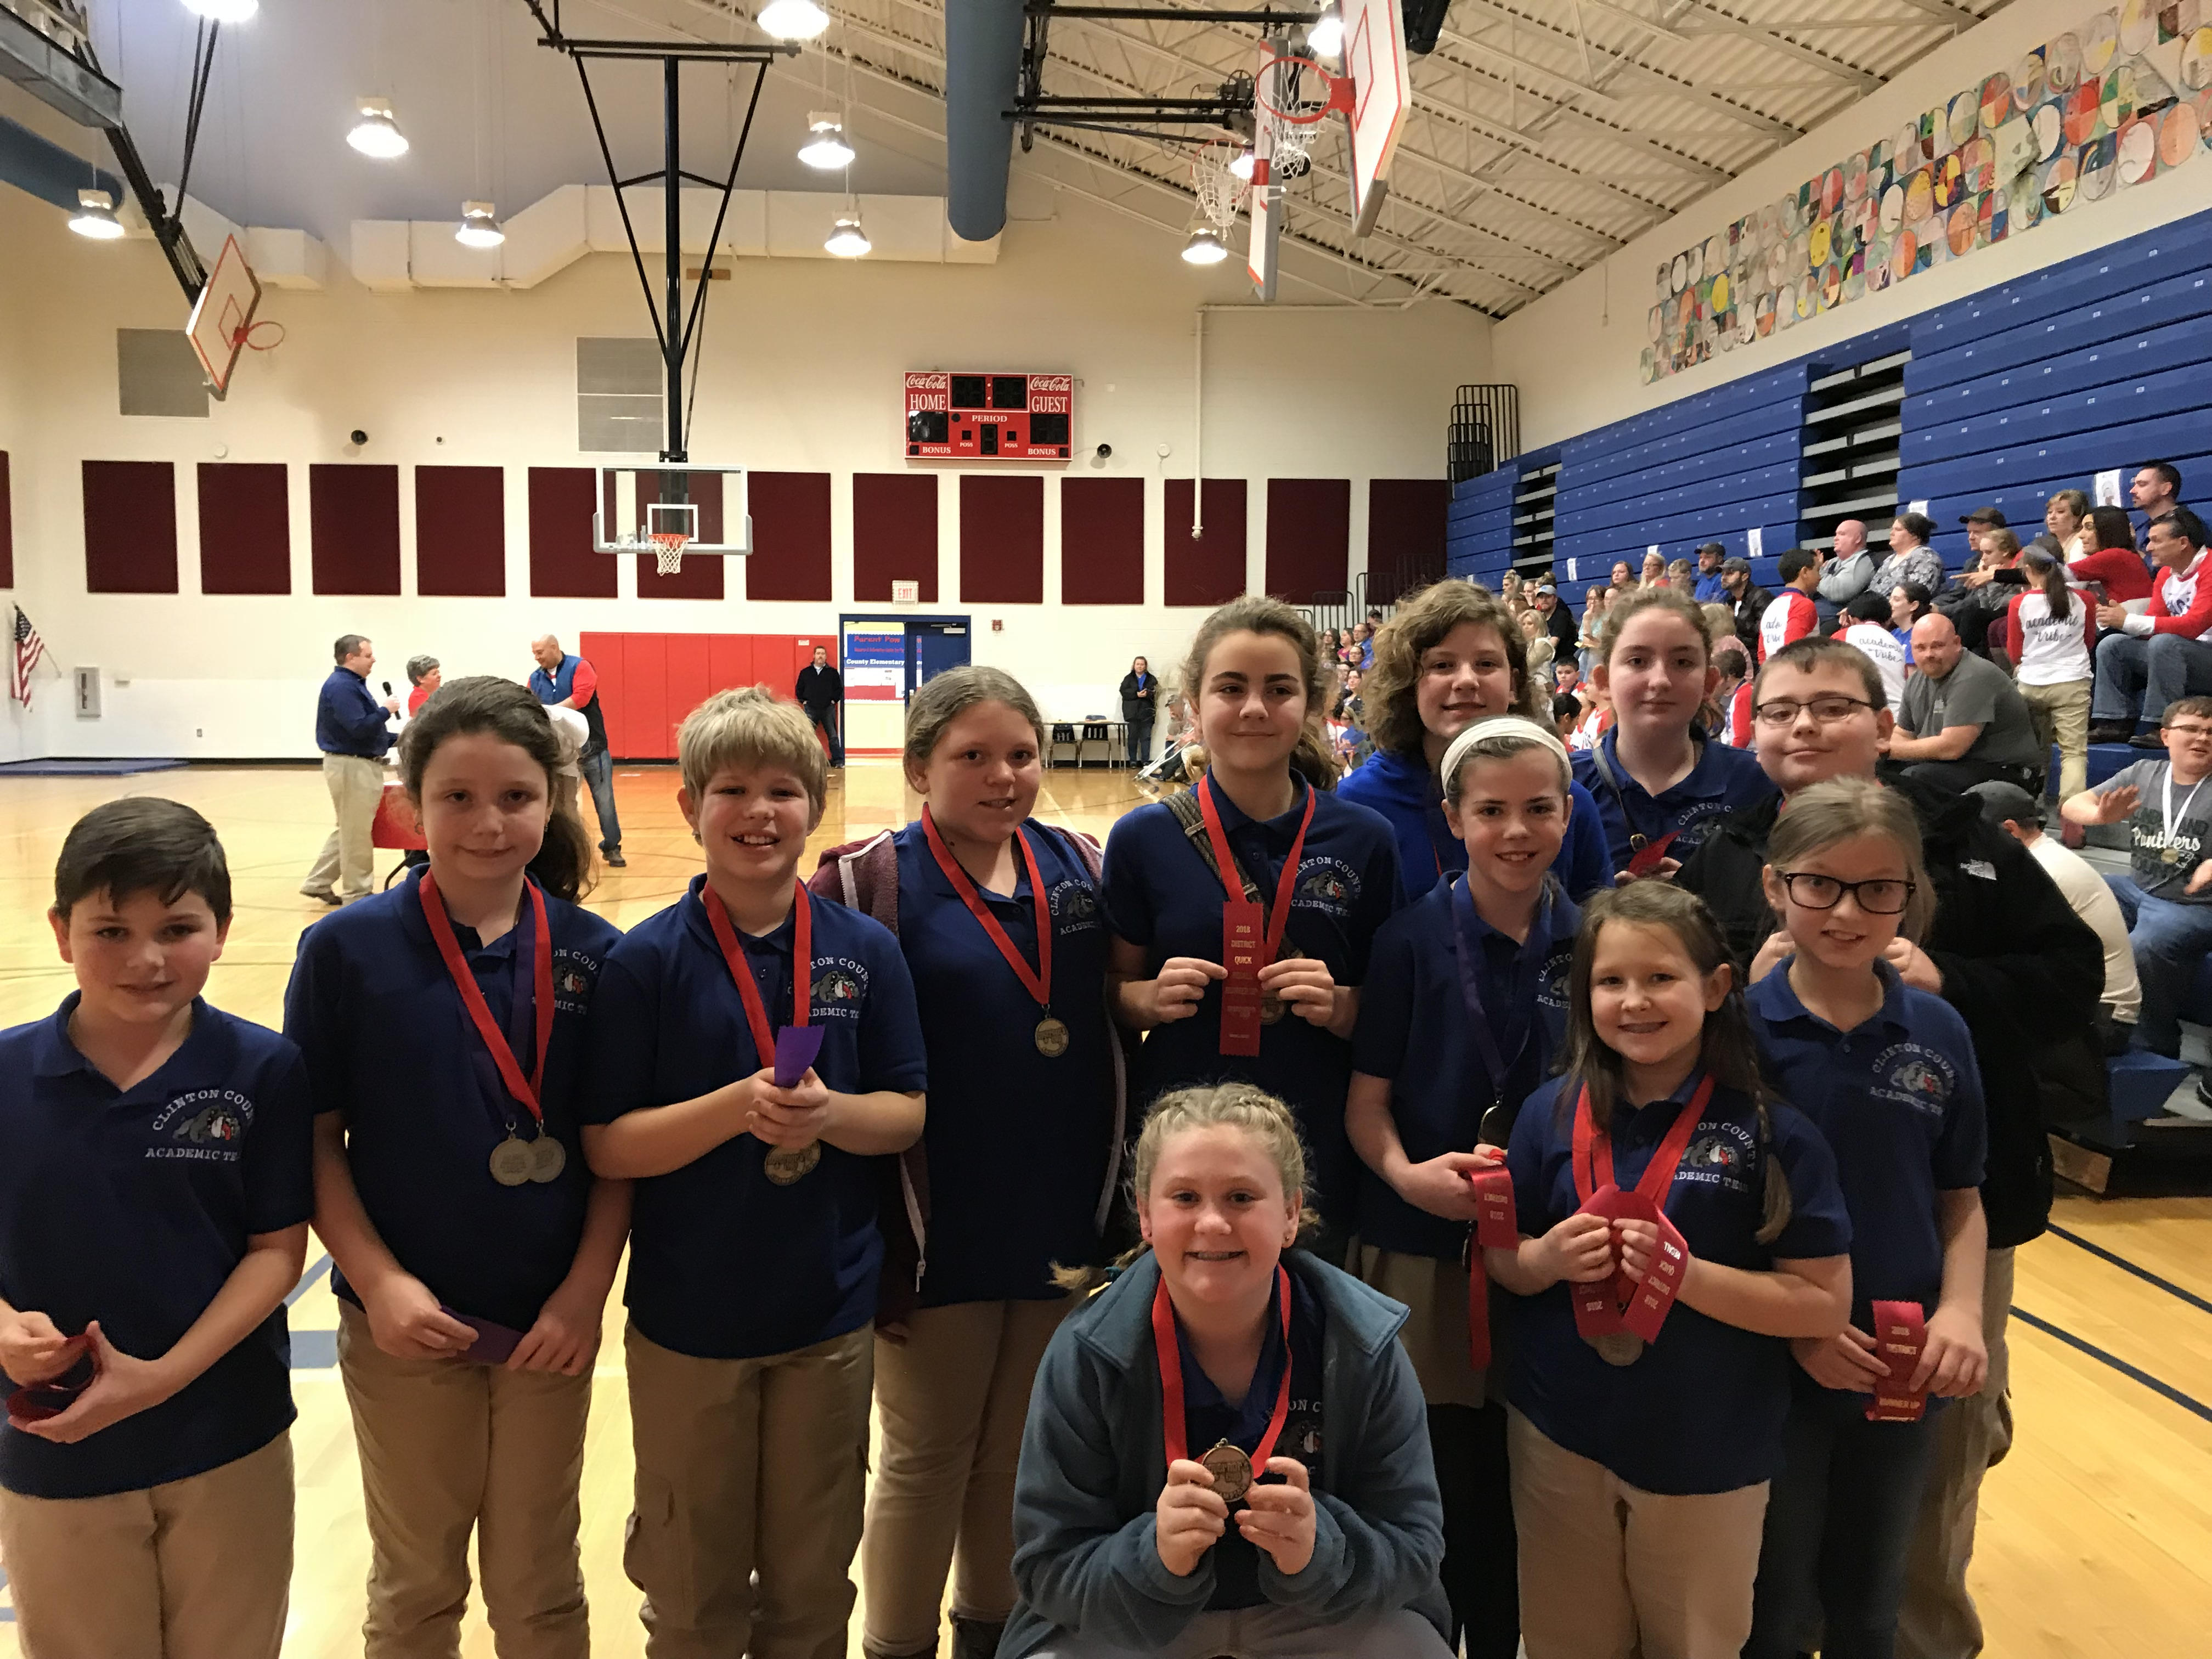 Congratulations to the Elementary Academic Team on being Runner-Up in the District 54 Elementary Governor's Cup Competition!